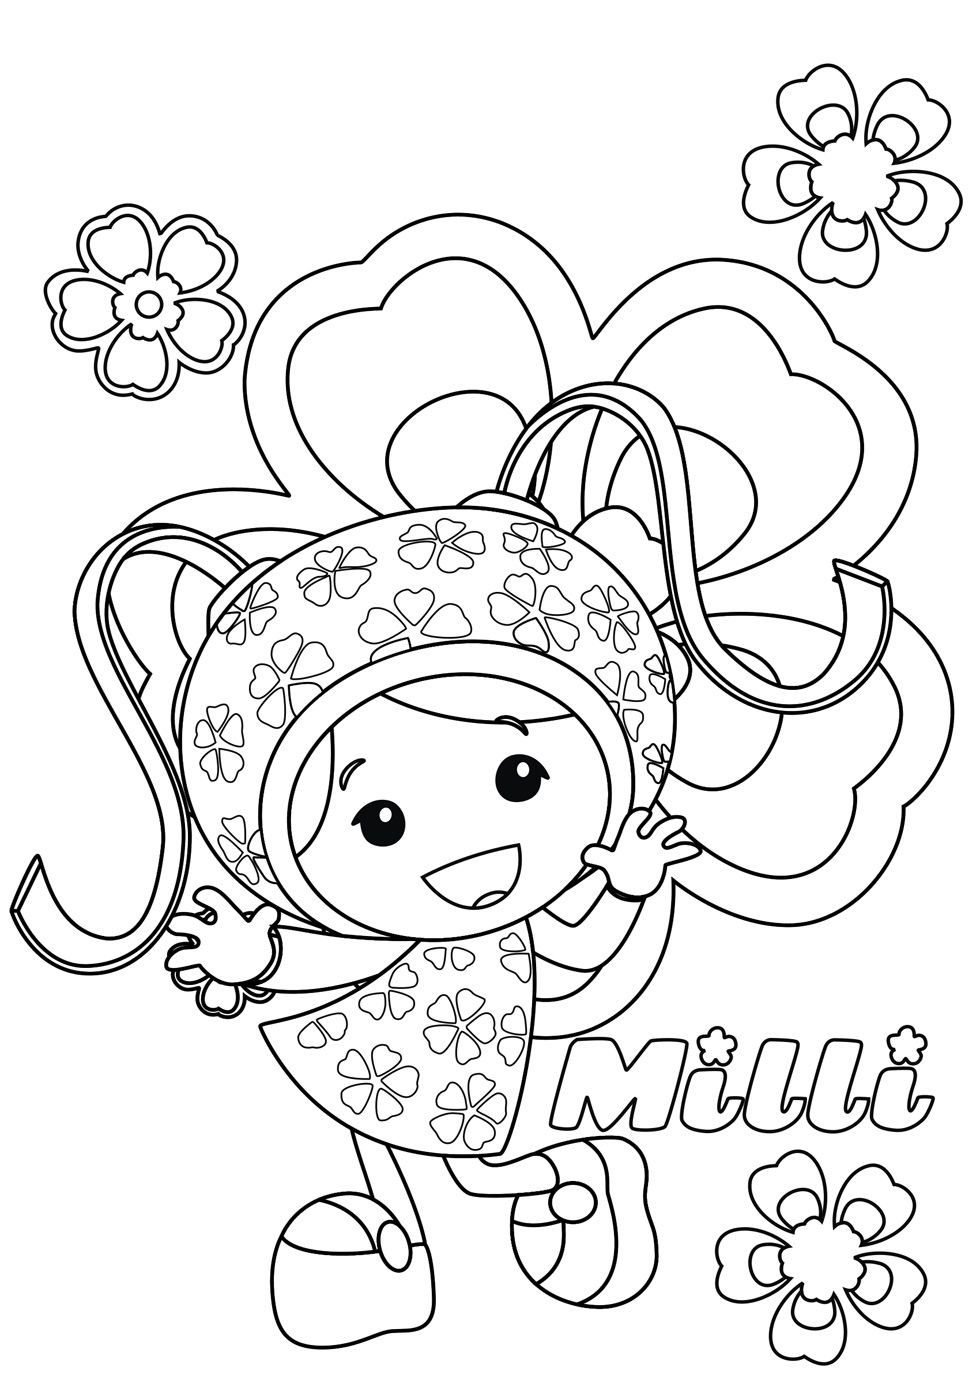 980x1374 Free Printable Team Umizoomi Coloring Pages For Kids